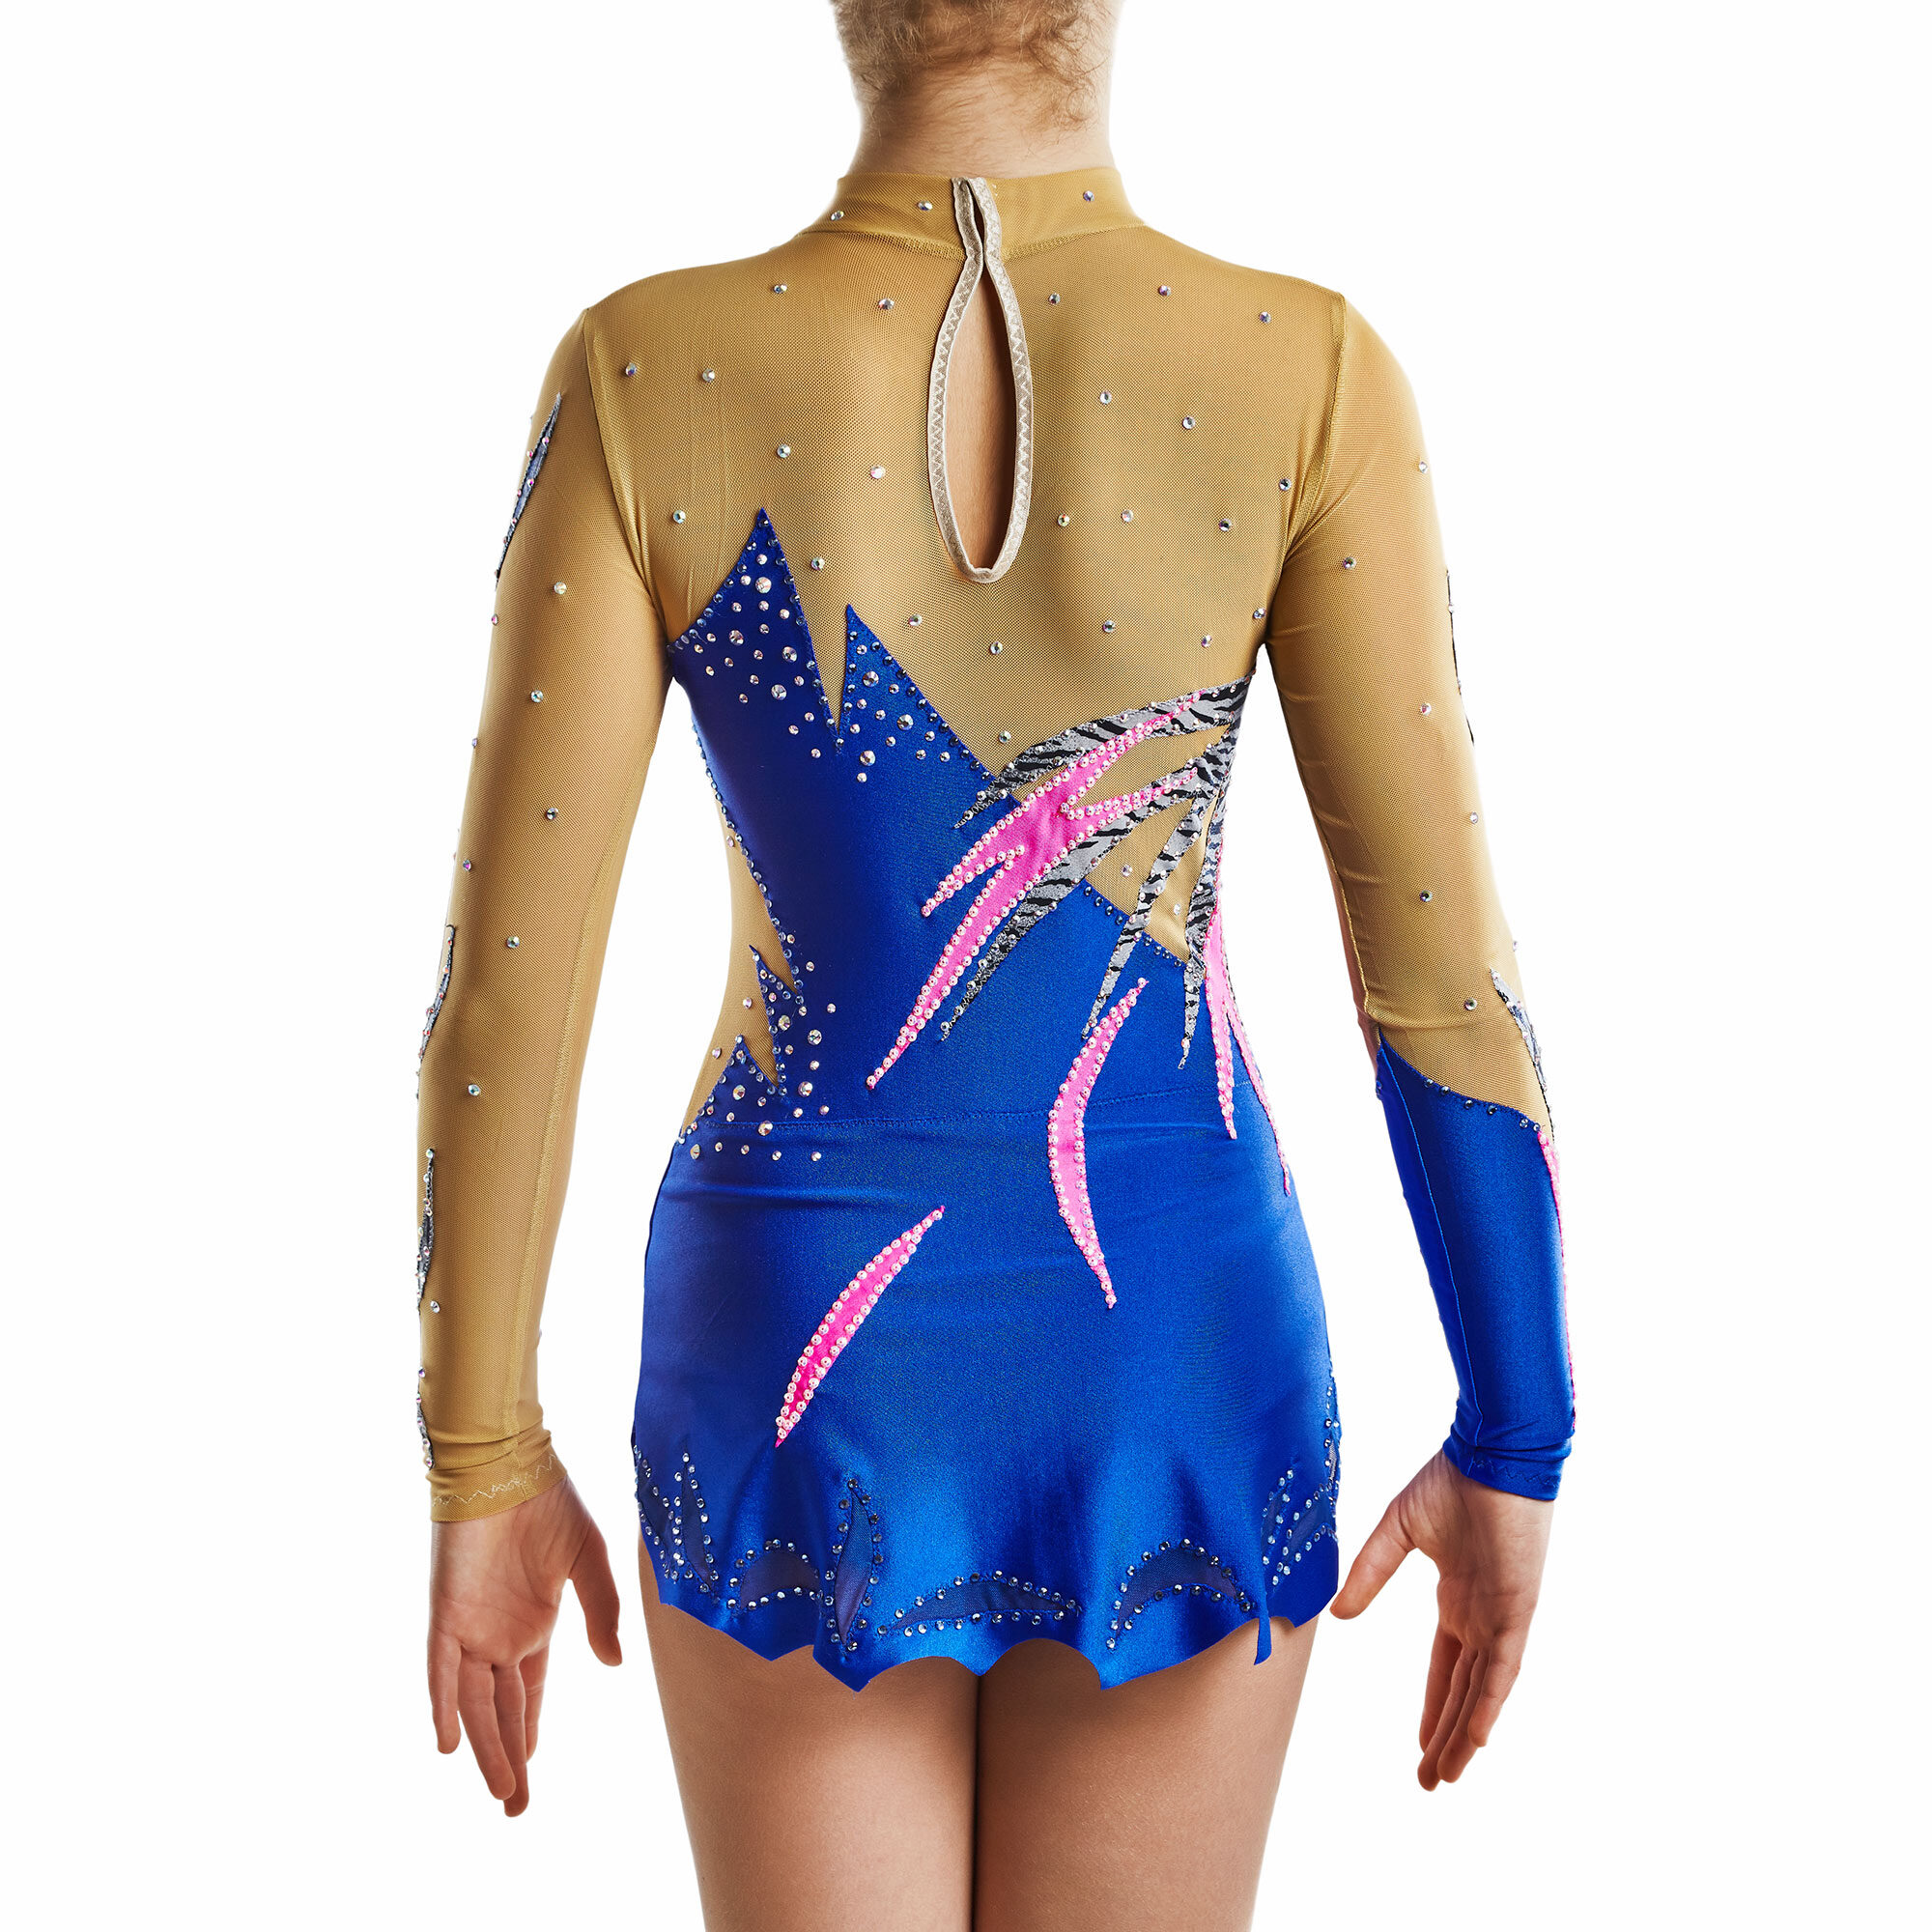 Rhythmic Gymnastics Leotard 166 for competitions